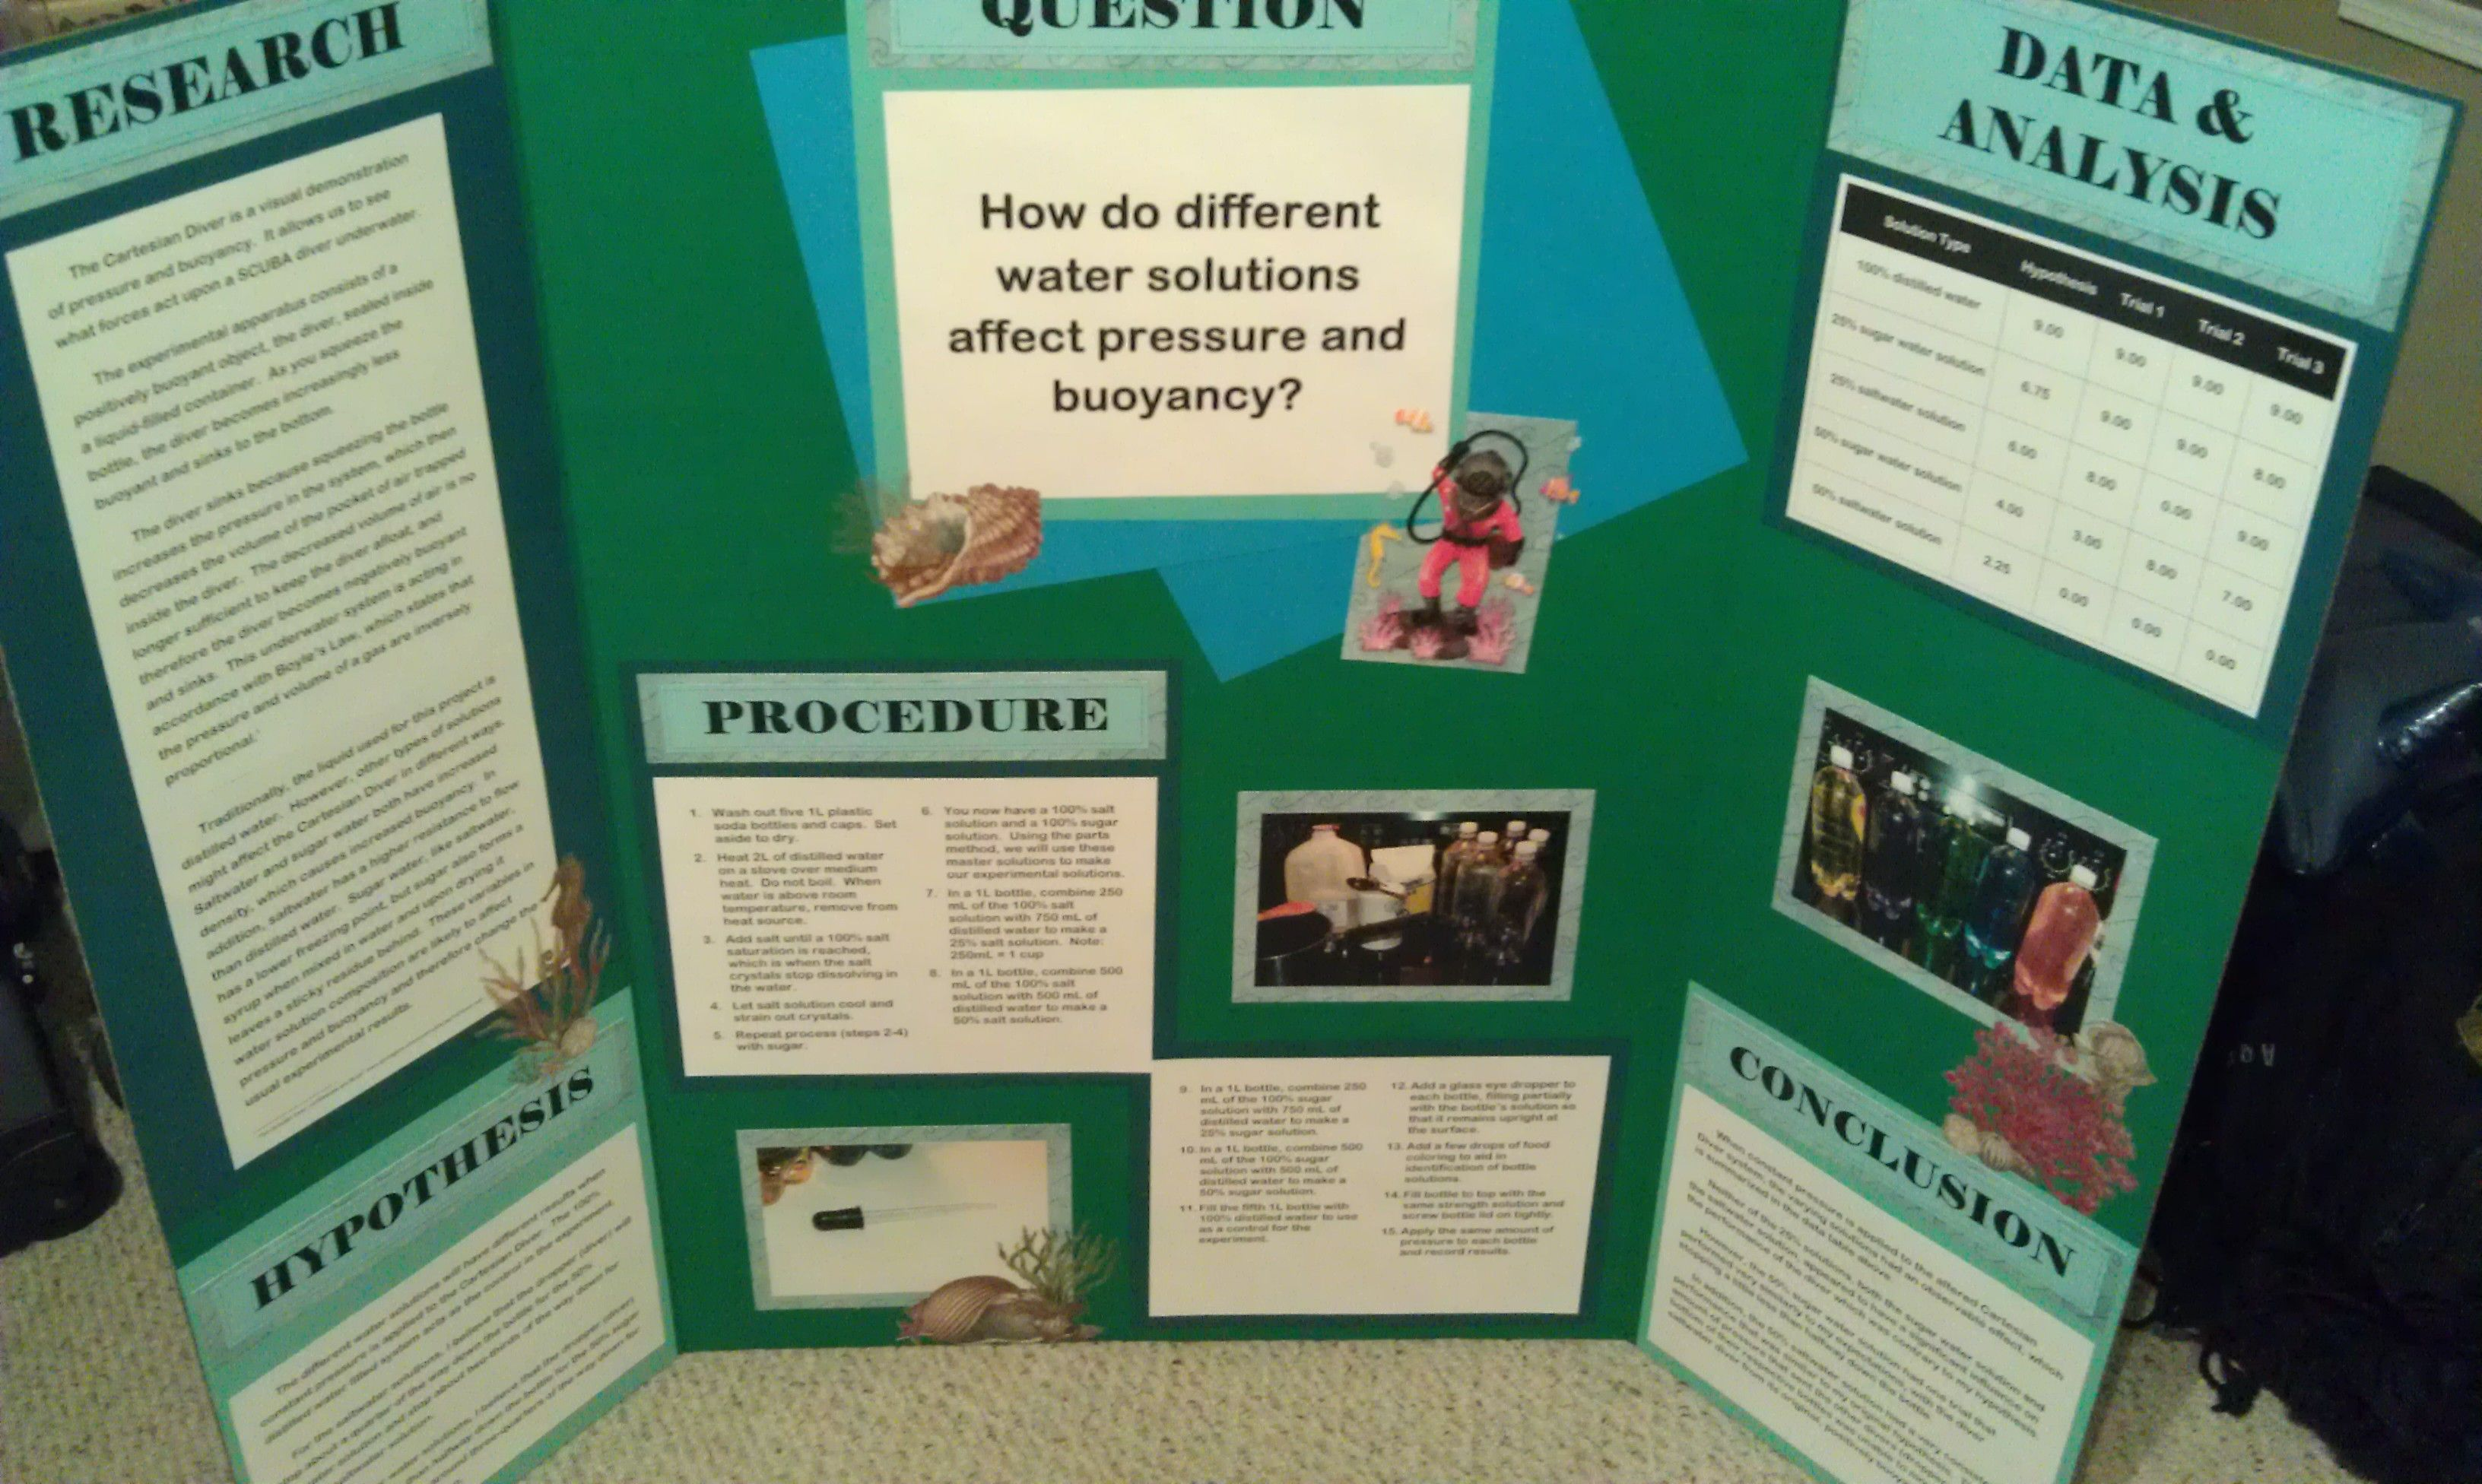 6th grade science project on buoyancy and pressure using the